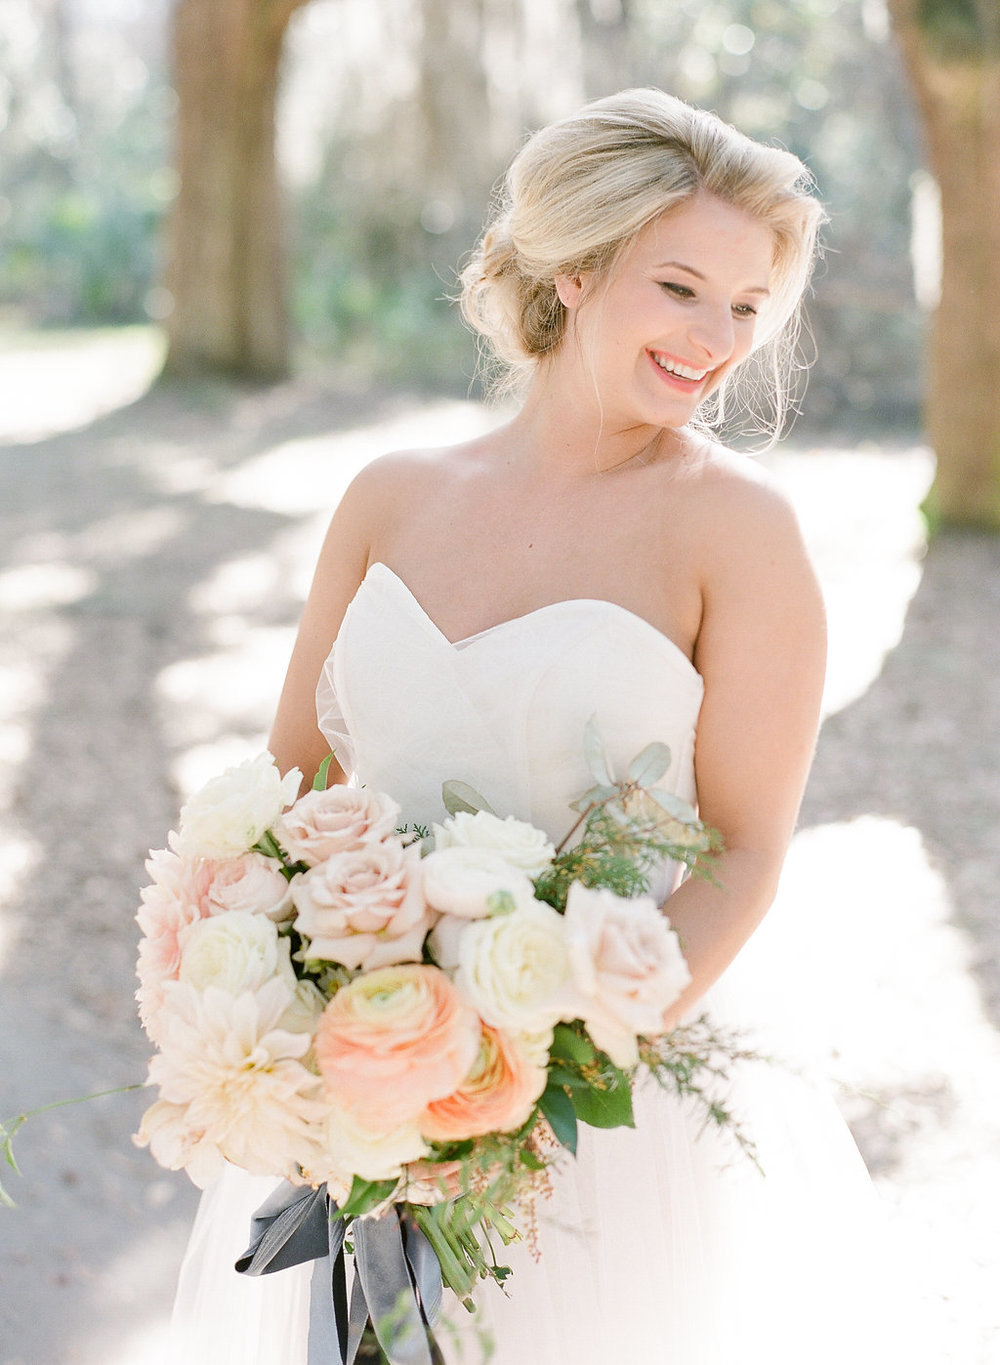 the-happy-bloom-wormsloe-wedding-savannah-wedding-ivory-and-beau-bridal-boutique-savannah-wedding-dresses-savannah-bridal-boutique-georgia-bridal-boutique-design-studio-south-sunset-wedding-blush-by-hayley-paige-candi-1550-blush-wedding-dress-10.jpg